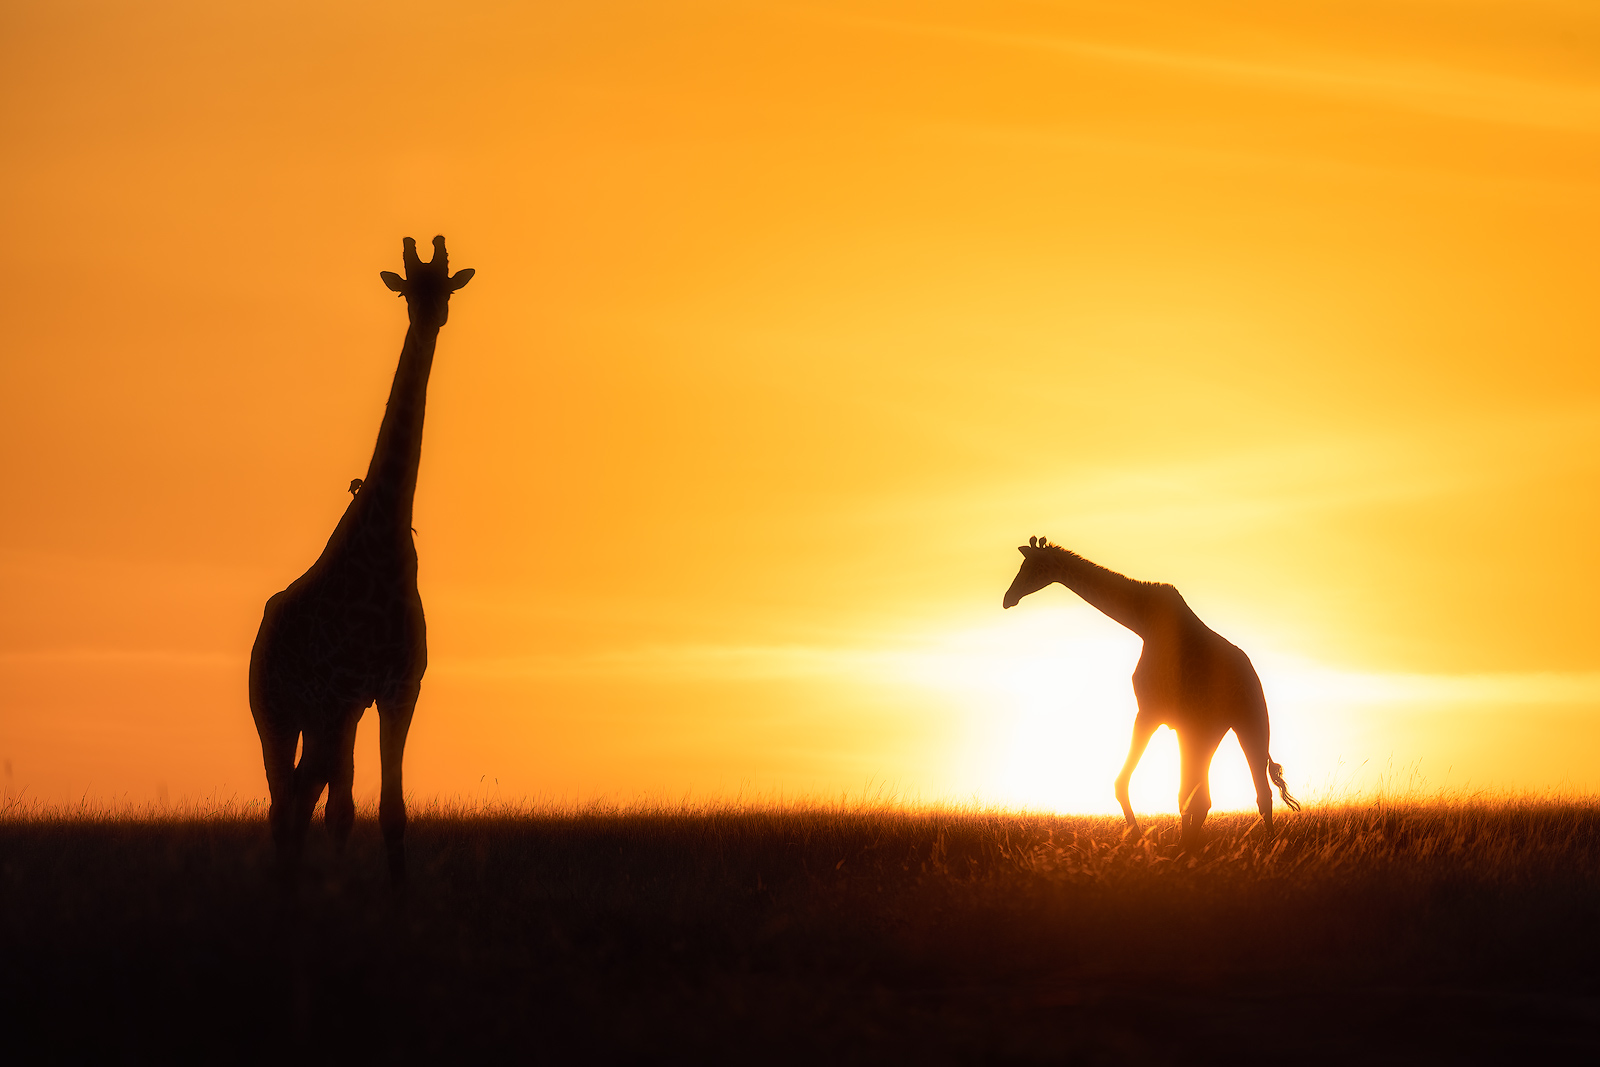 Giraffes crossing paths with a brilliant African sunrise.